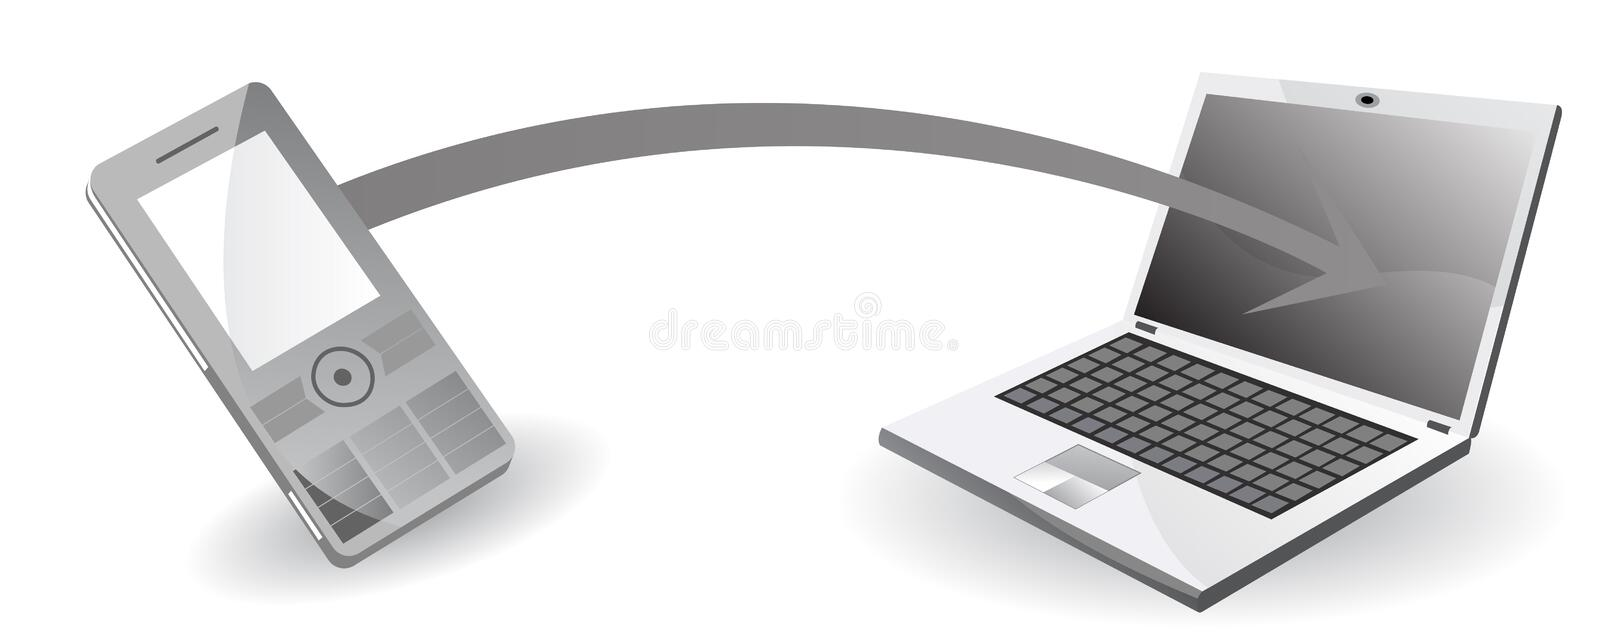 Data transfer from mobile phone to computer. Vector illustration stock illustration